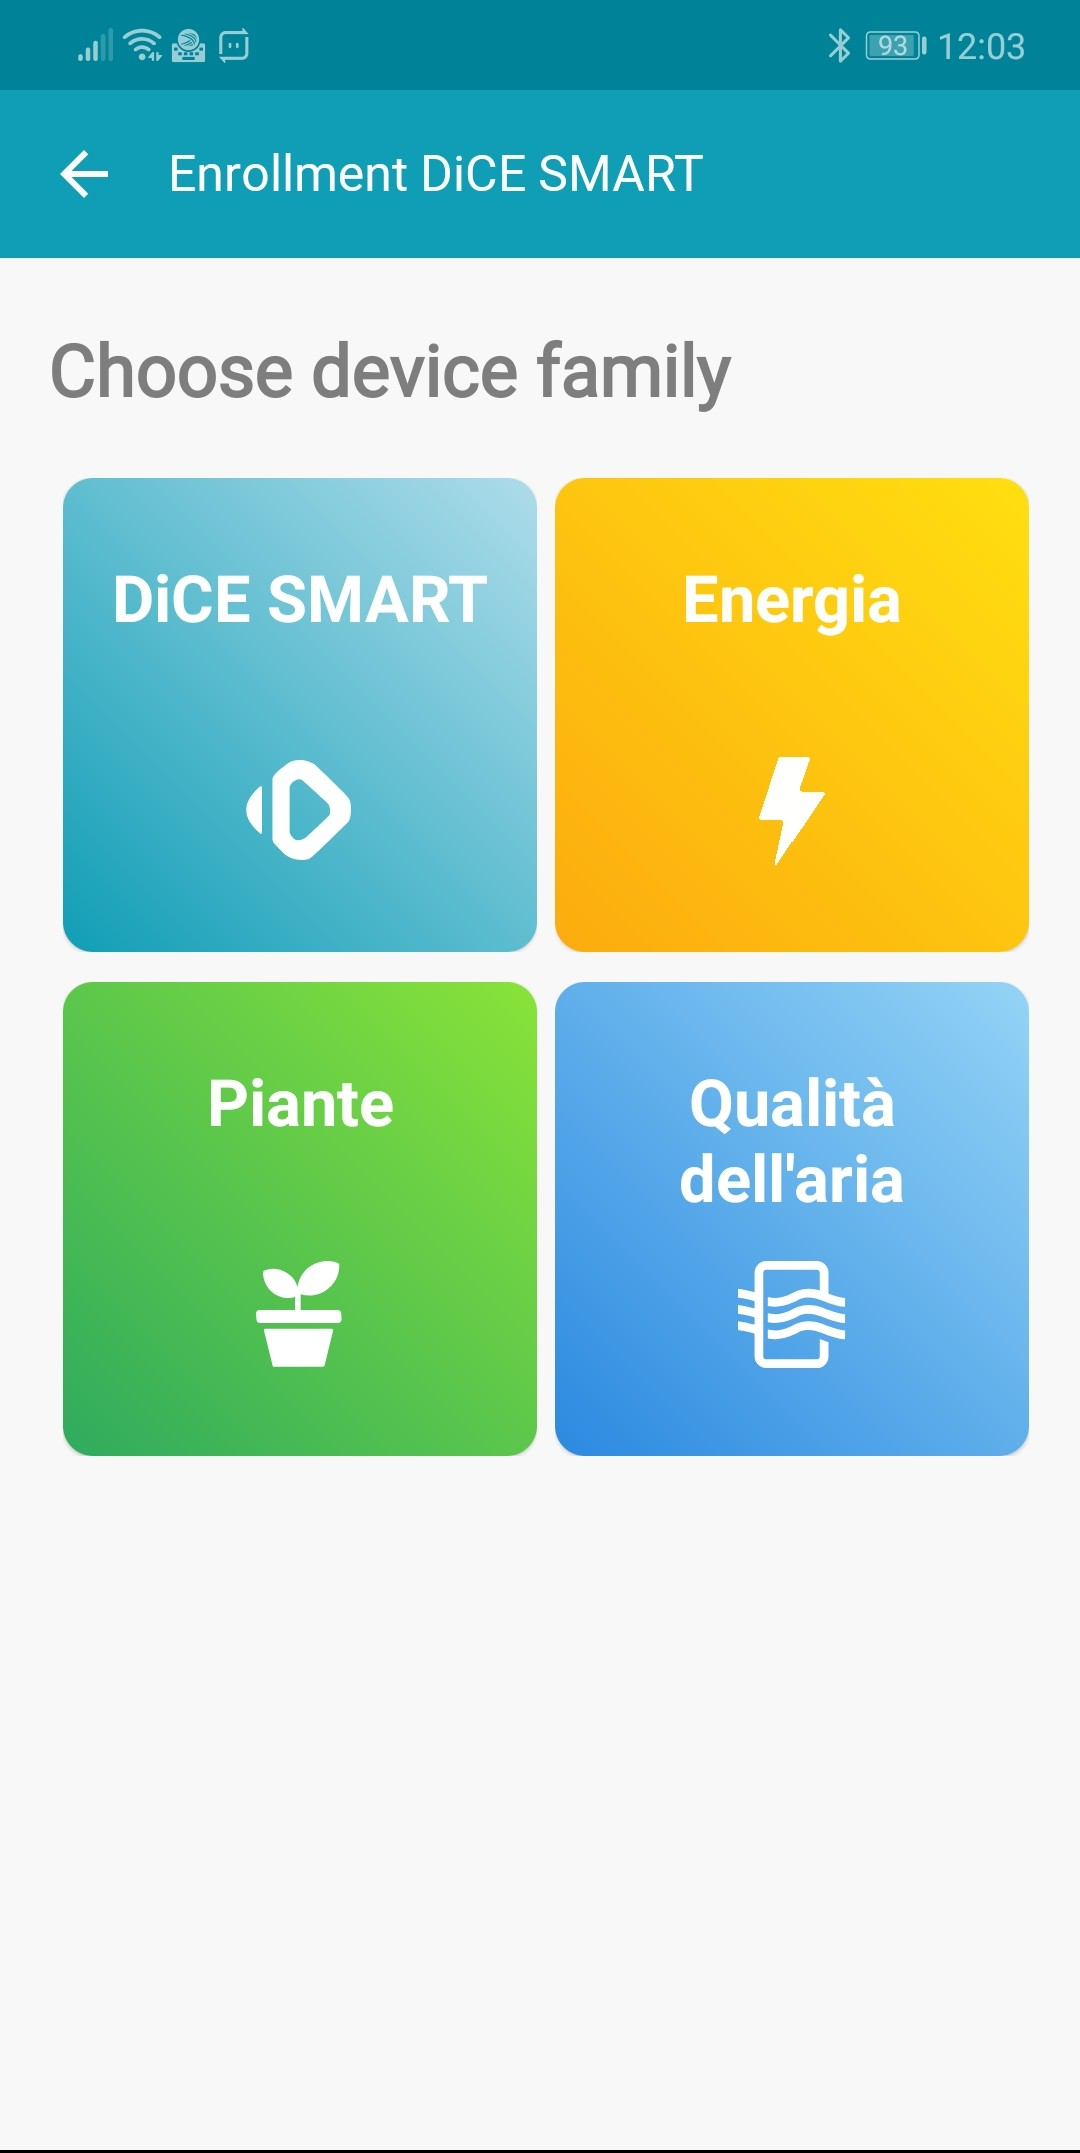 The devices associated with DiCE Smart are shown in the DiCEhome app